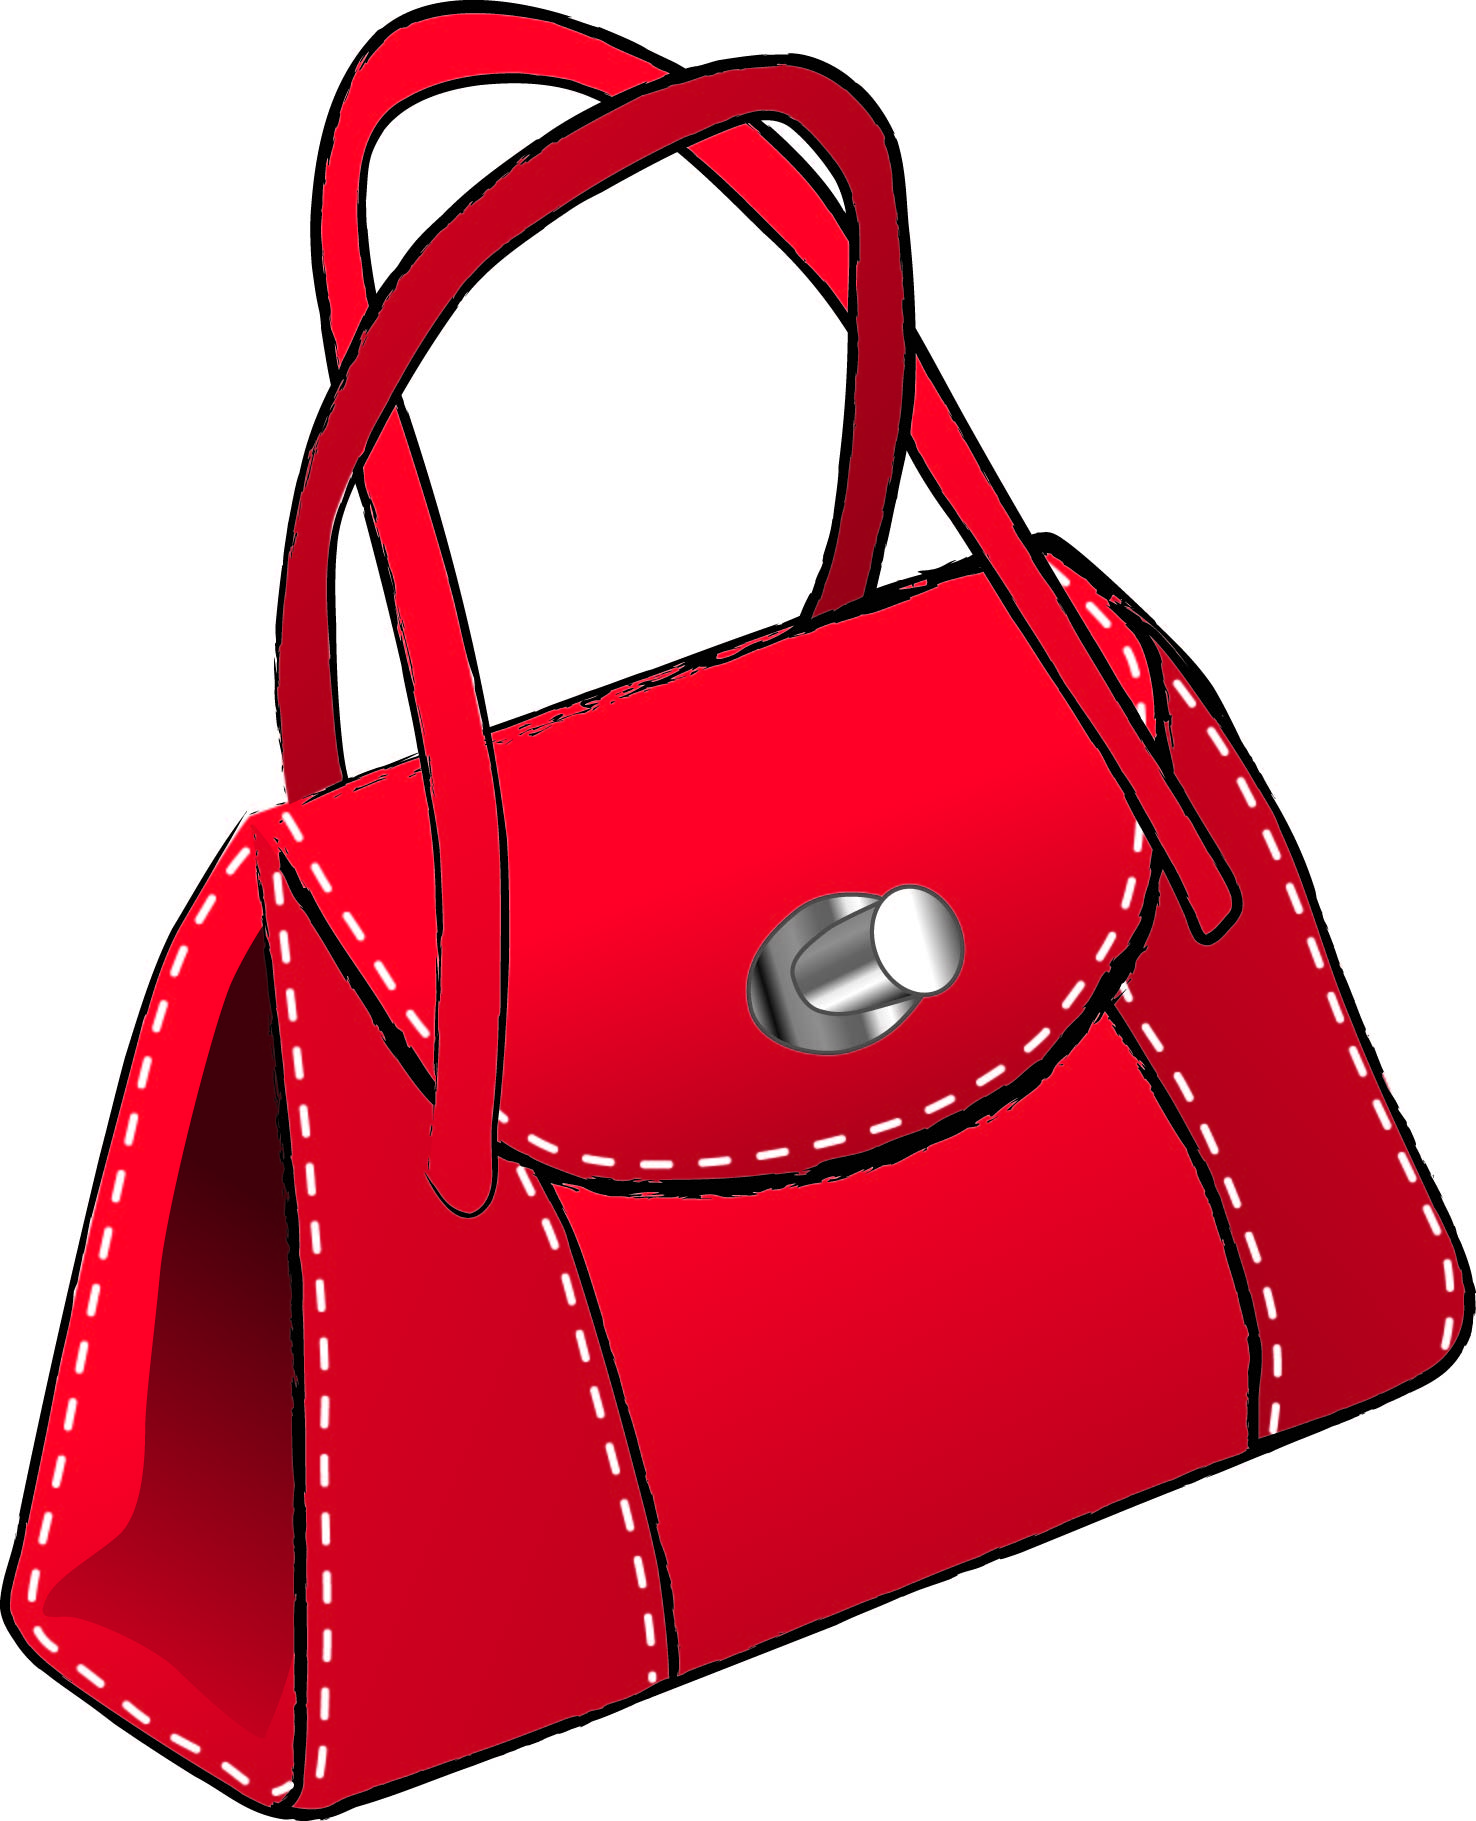 Custom handbags and purses cl - Purse Clipart